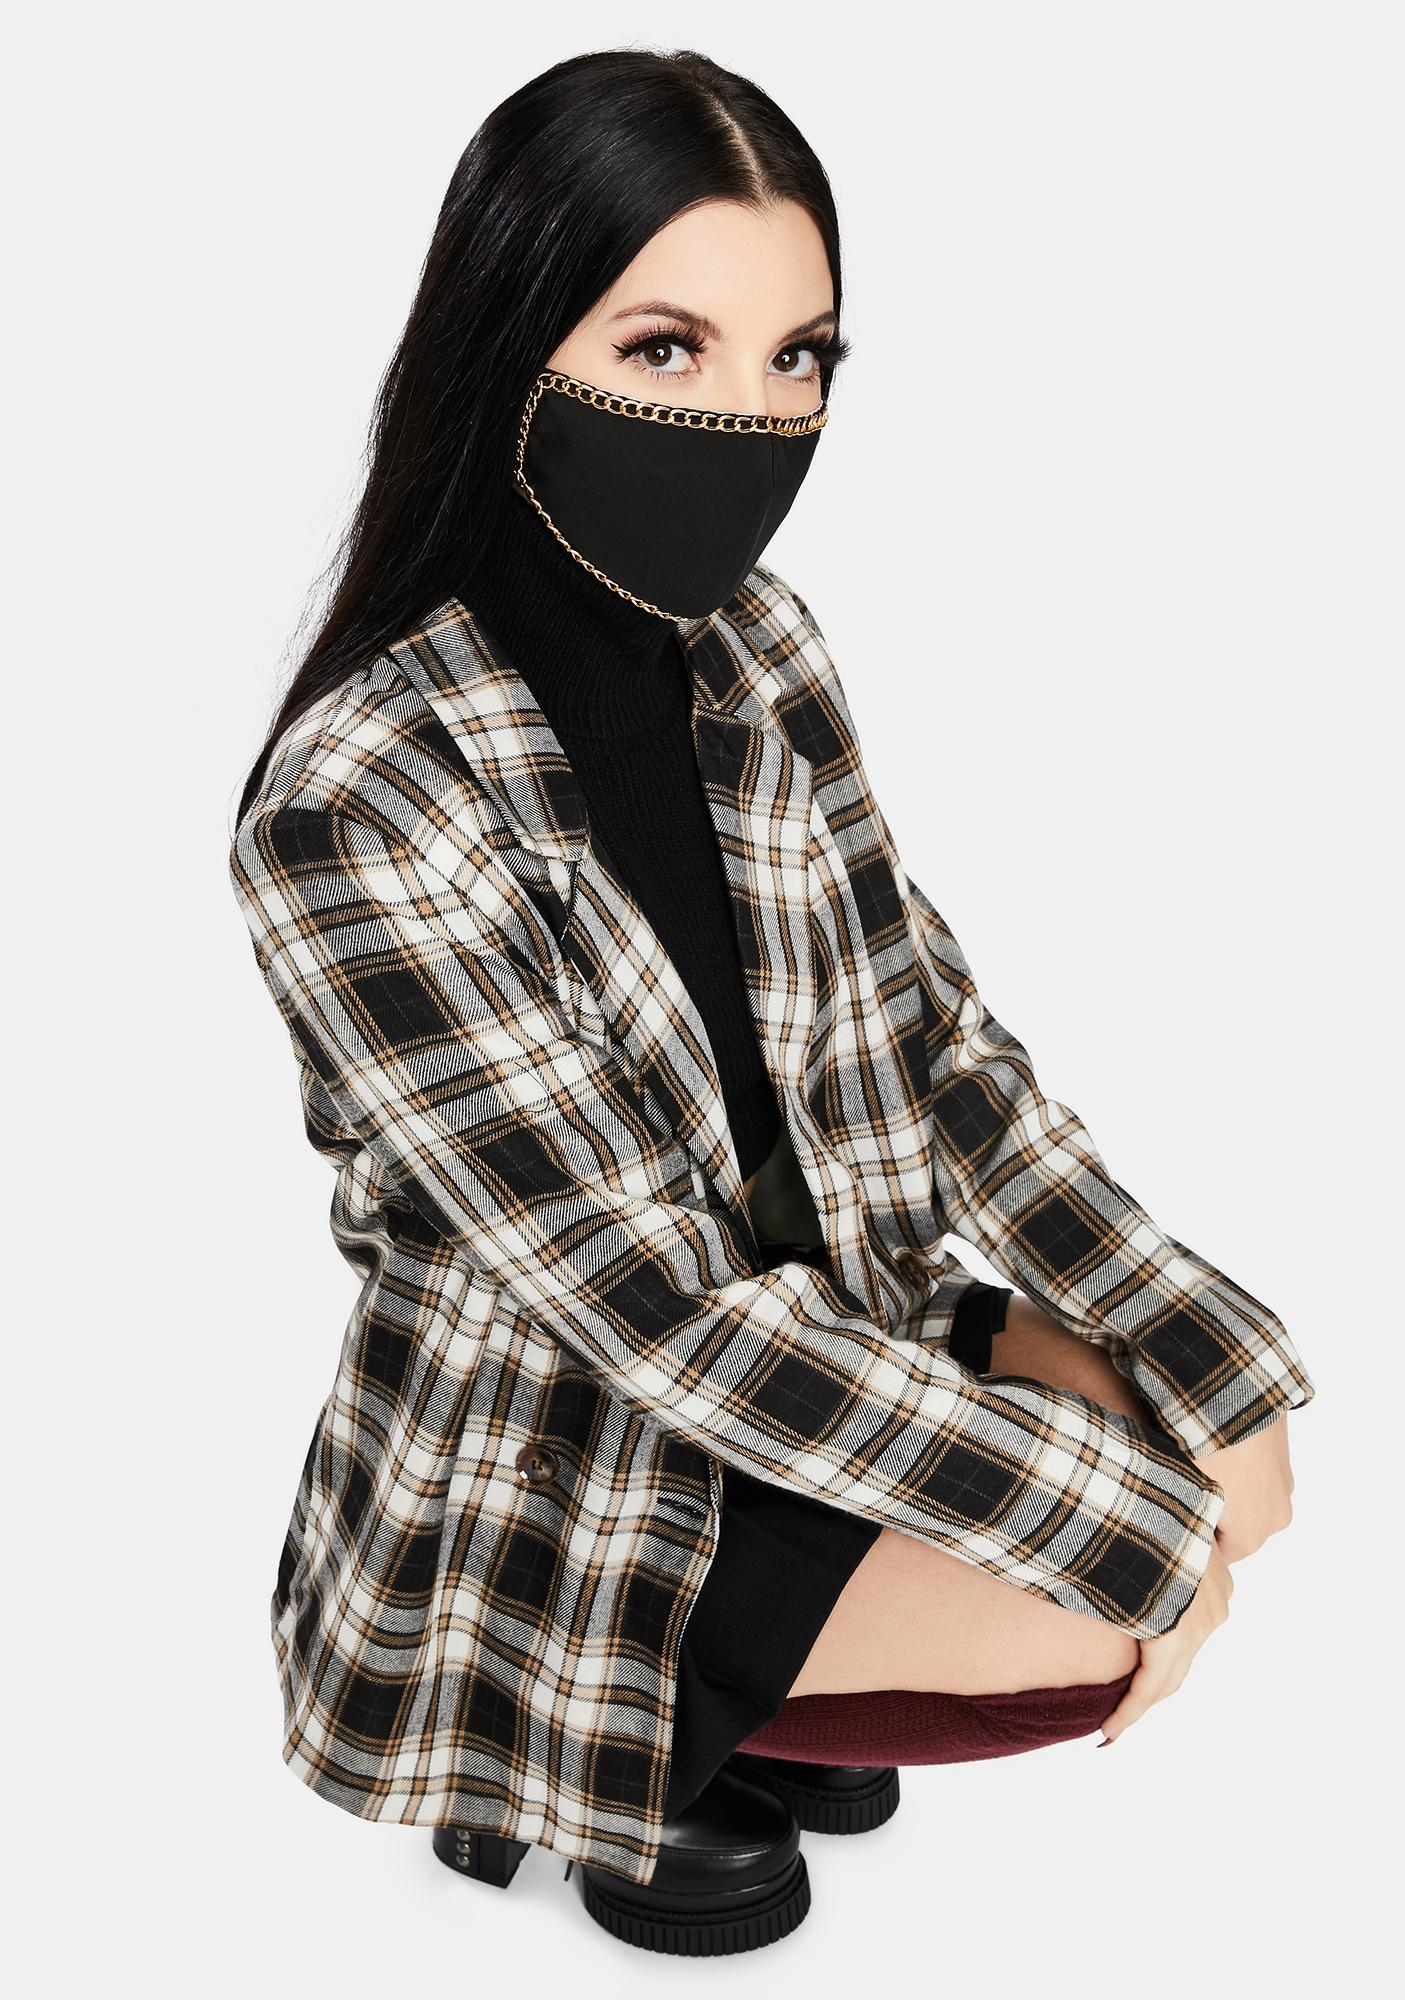 Get Outta Here Chain Trim Face Mask